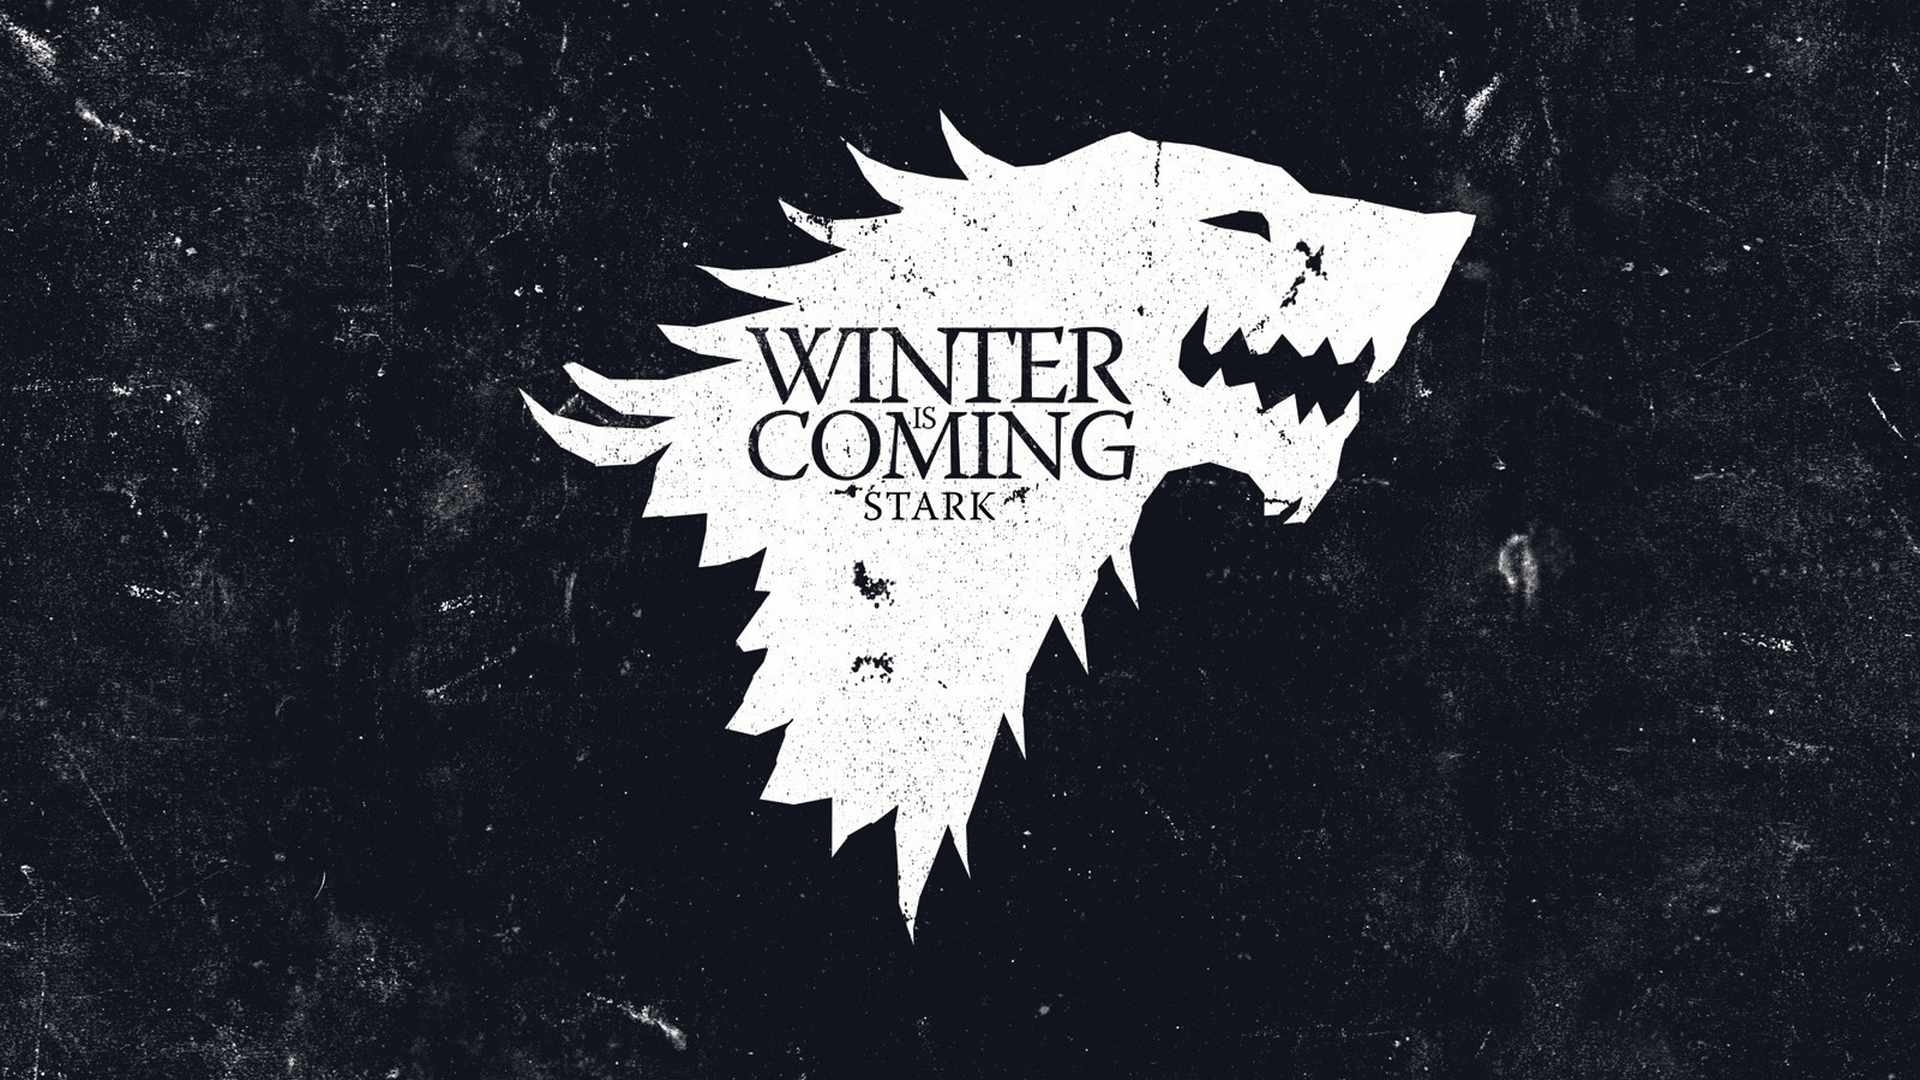 winter is coming game of thrones background - hd wallpapers